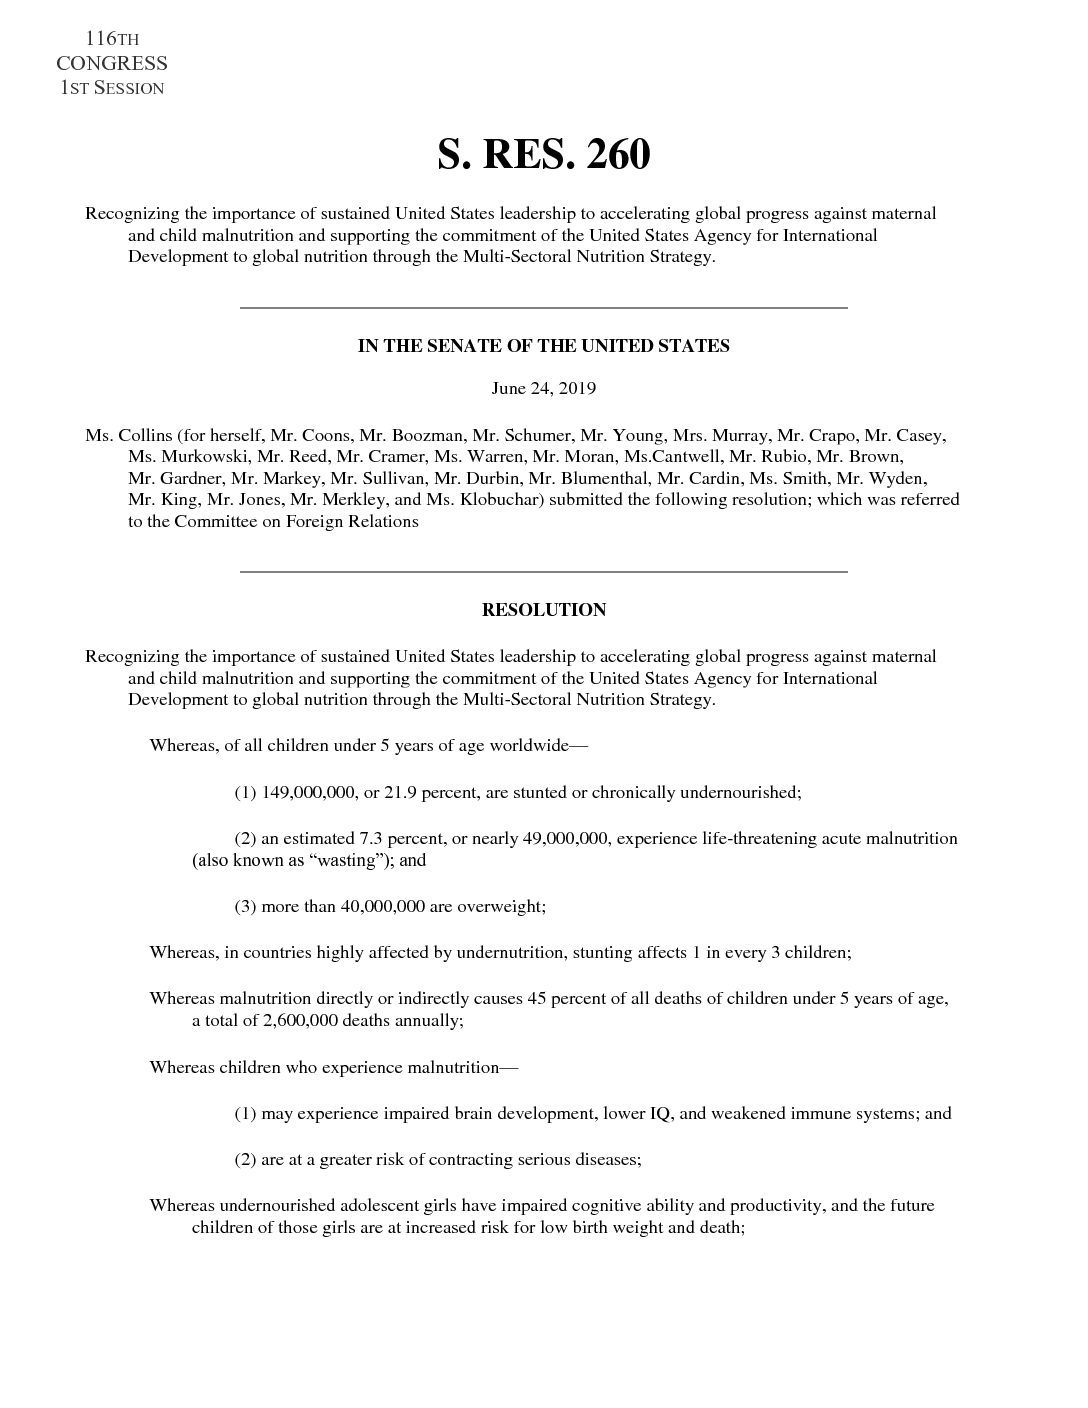 Senate Global Nutrition Resolution – S.Res. 260